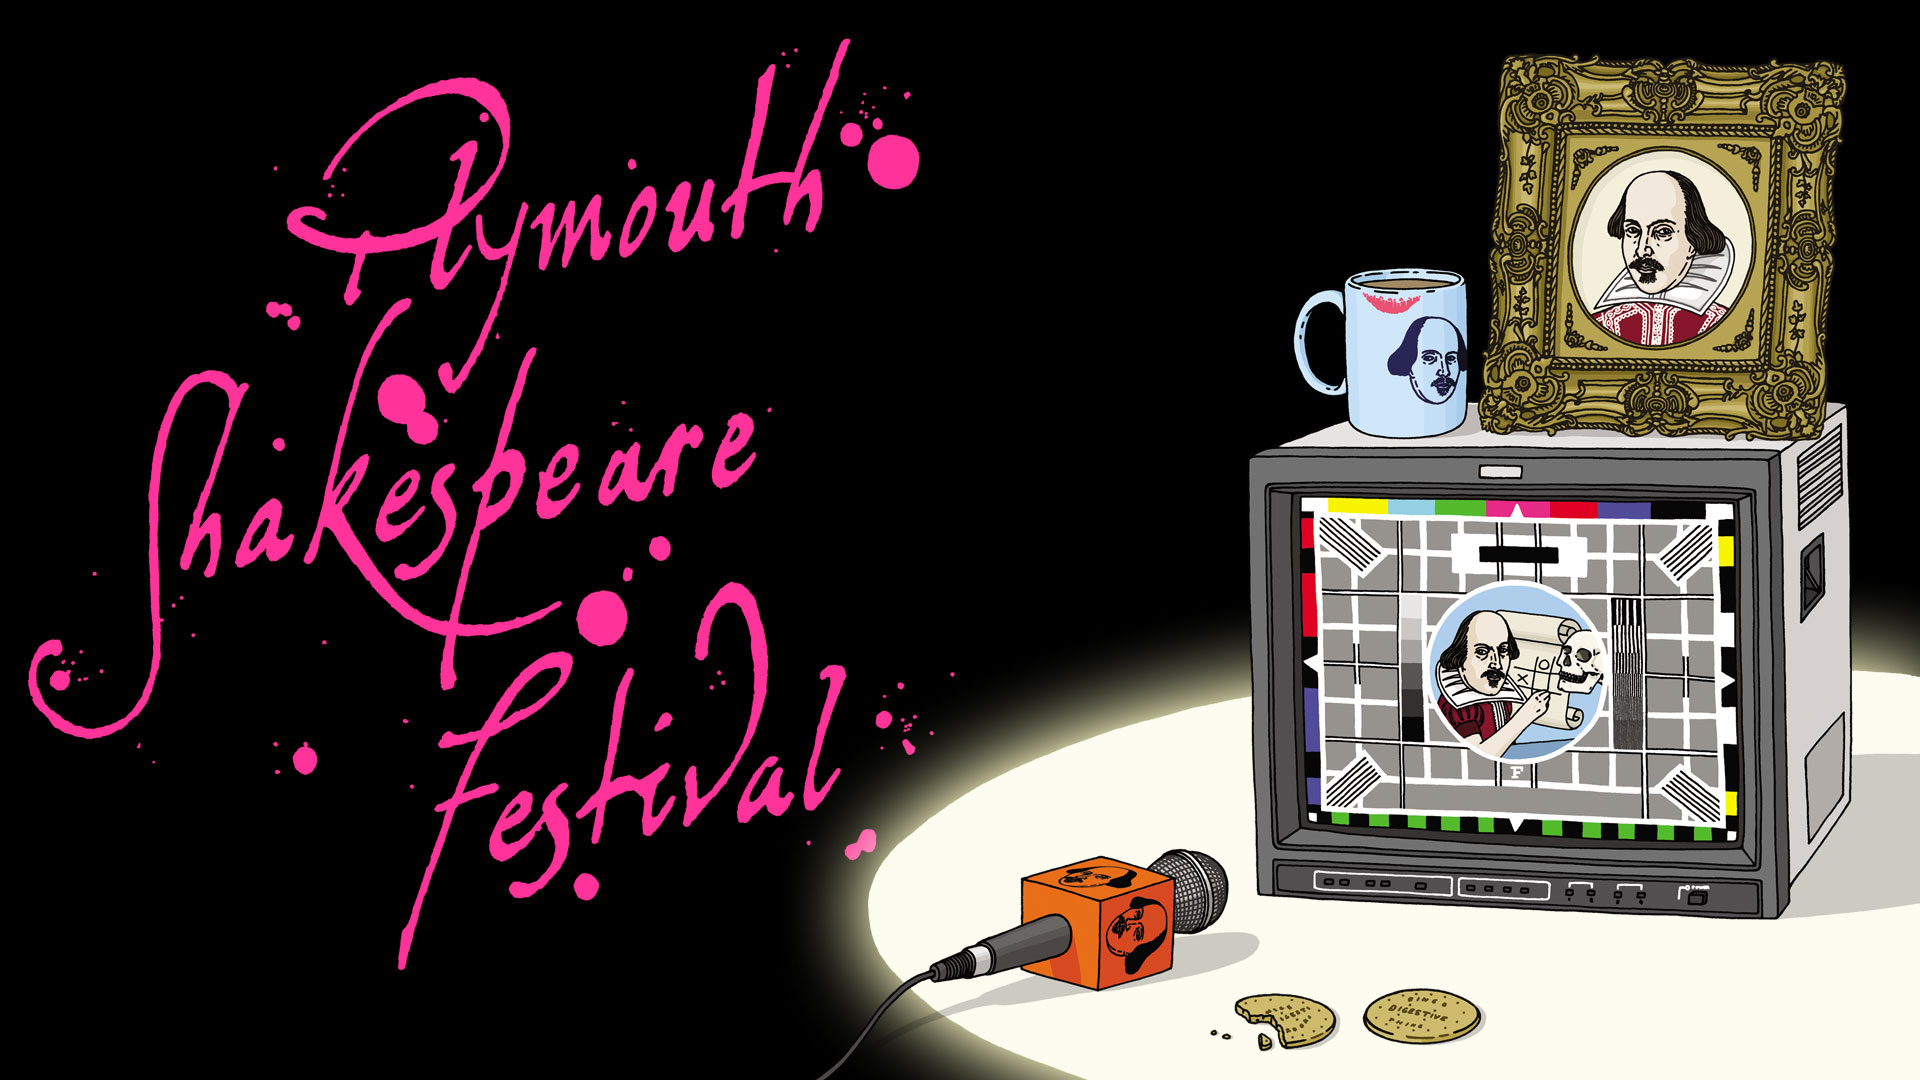 Plymouth Shakespeare Festival, event promotion